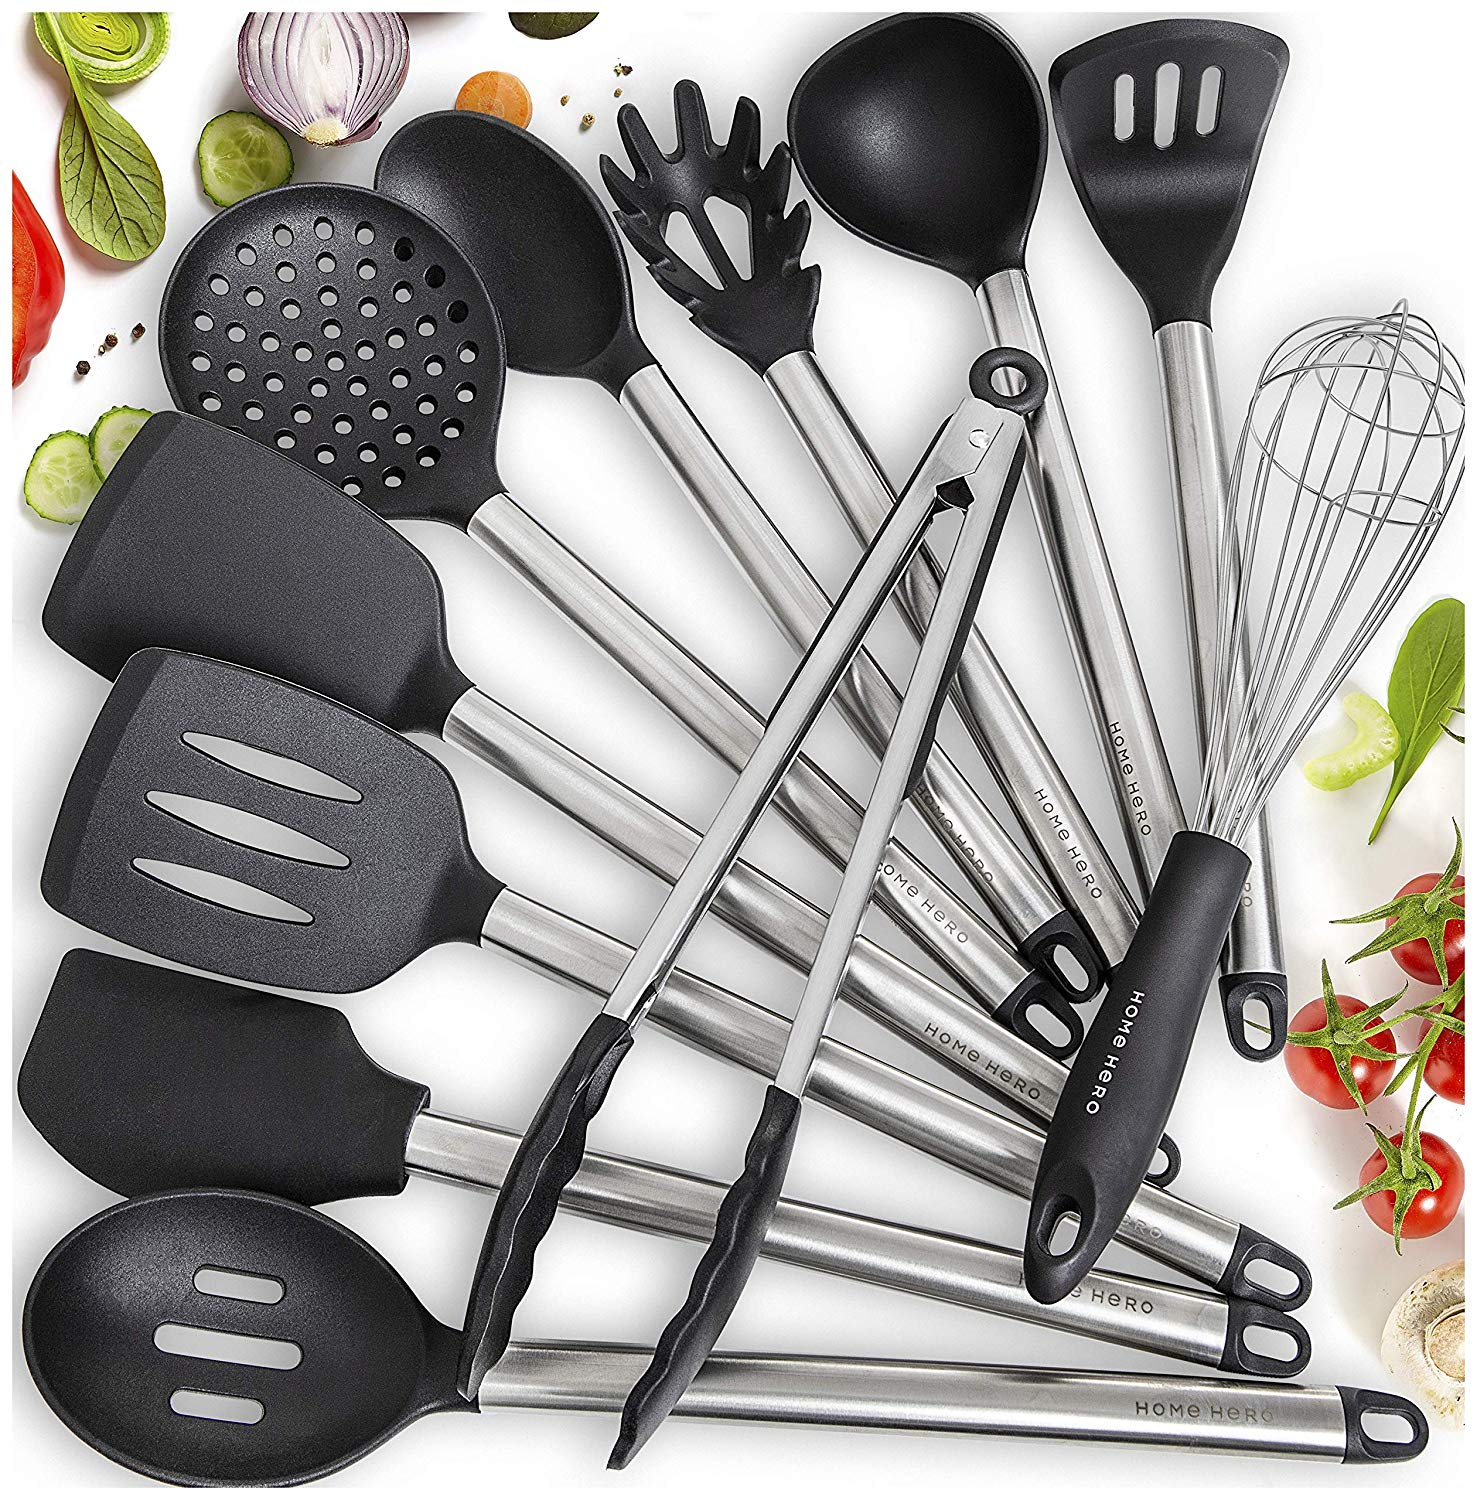 Home Hero Utensil Set